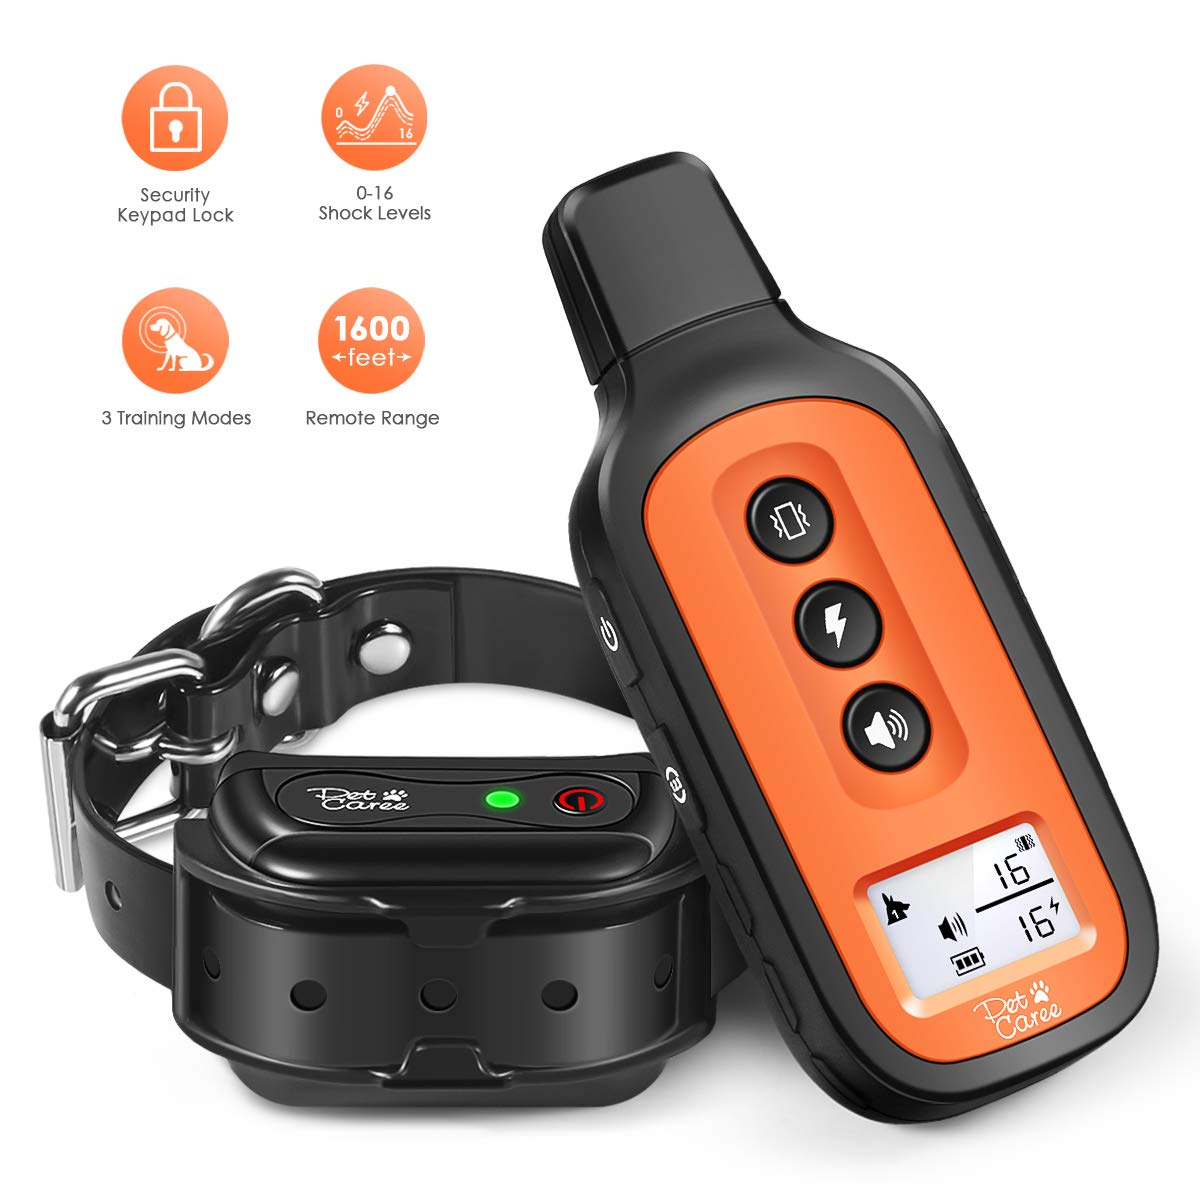 Cuteepets Dog Training Collar, 2019 Upgrade Rechargeable Dog Shock Collar with 3 Training Modes,100% Waterproof Training Collar, Up to 1600 Ft Remote Range, 0-16 Shock Levels Dog Training Set